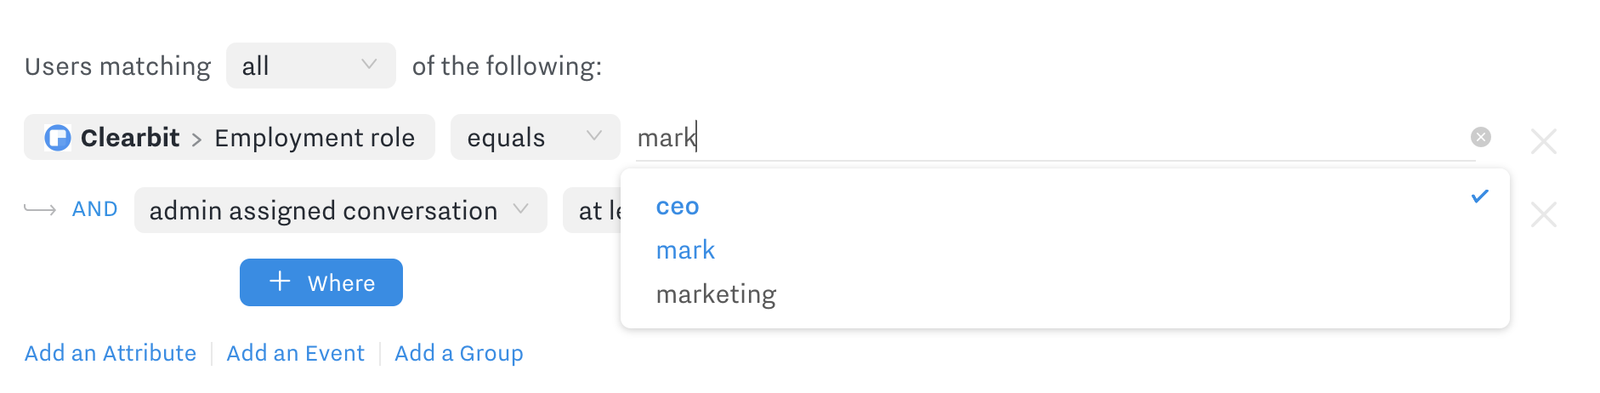 Segmentation autocomplete